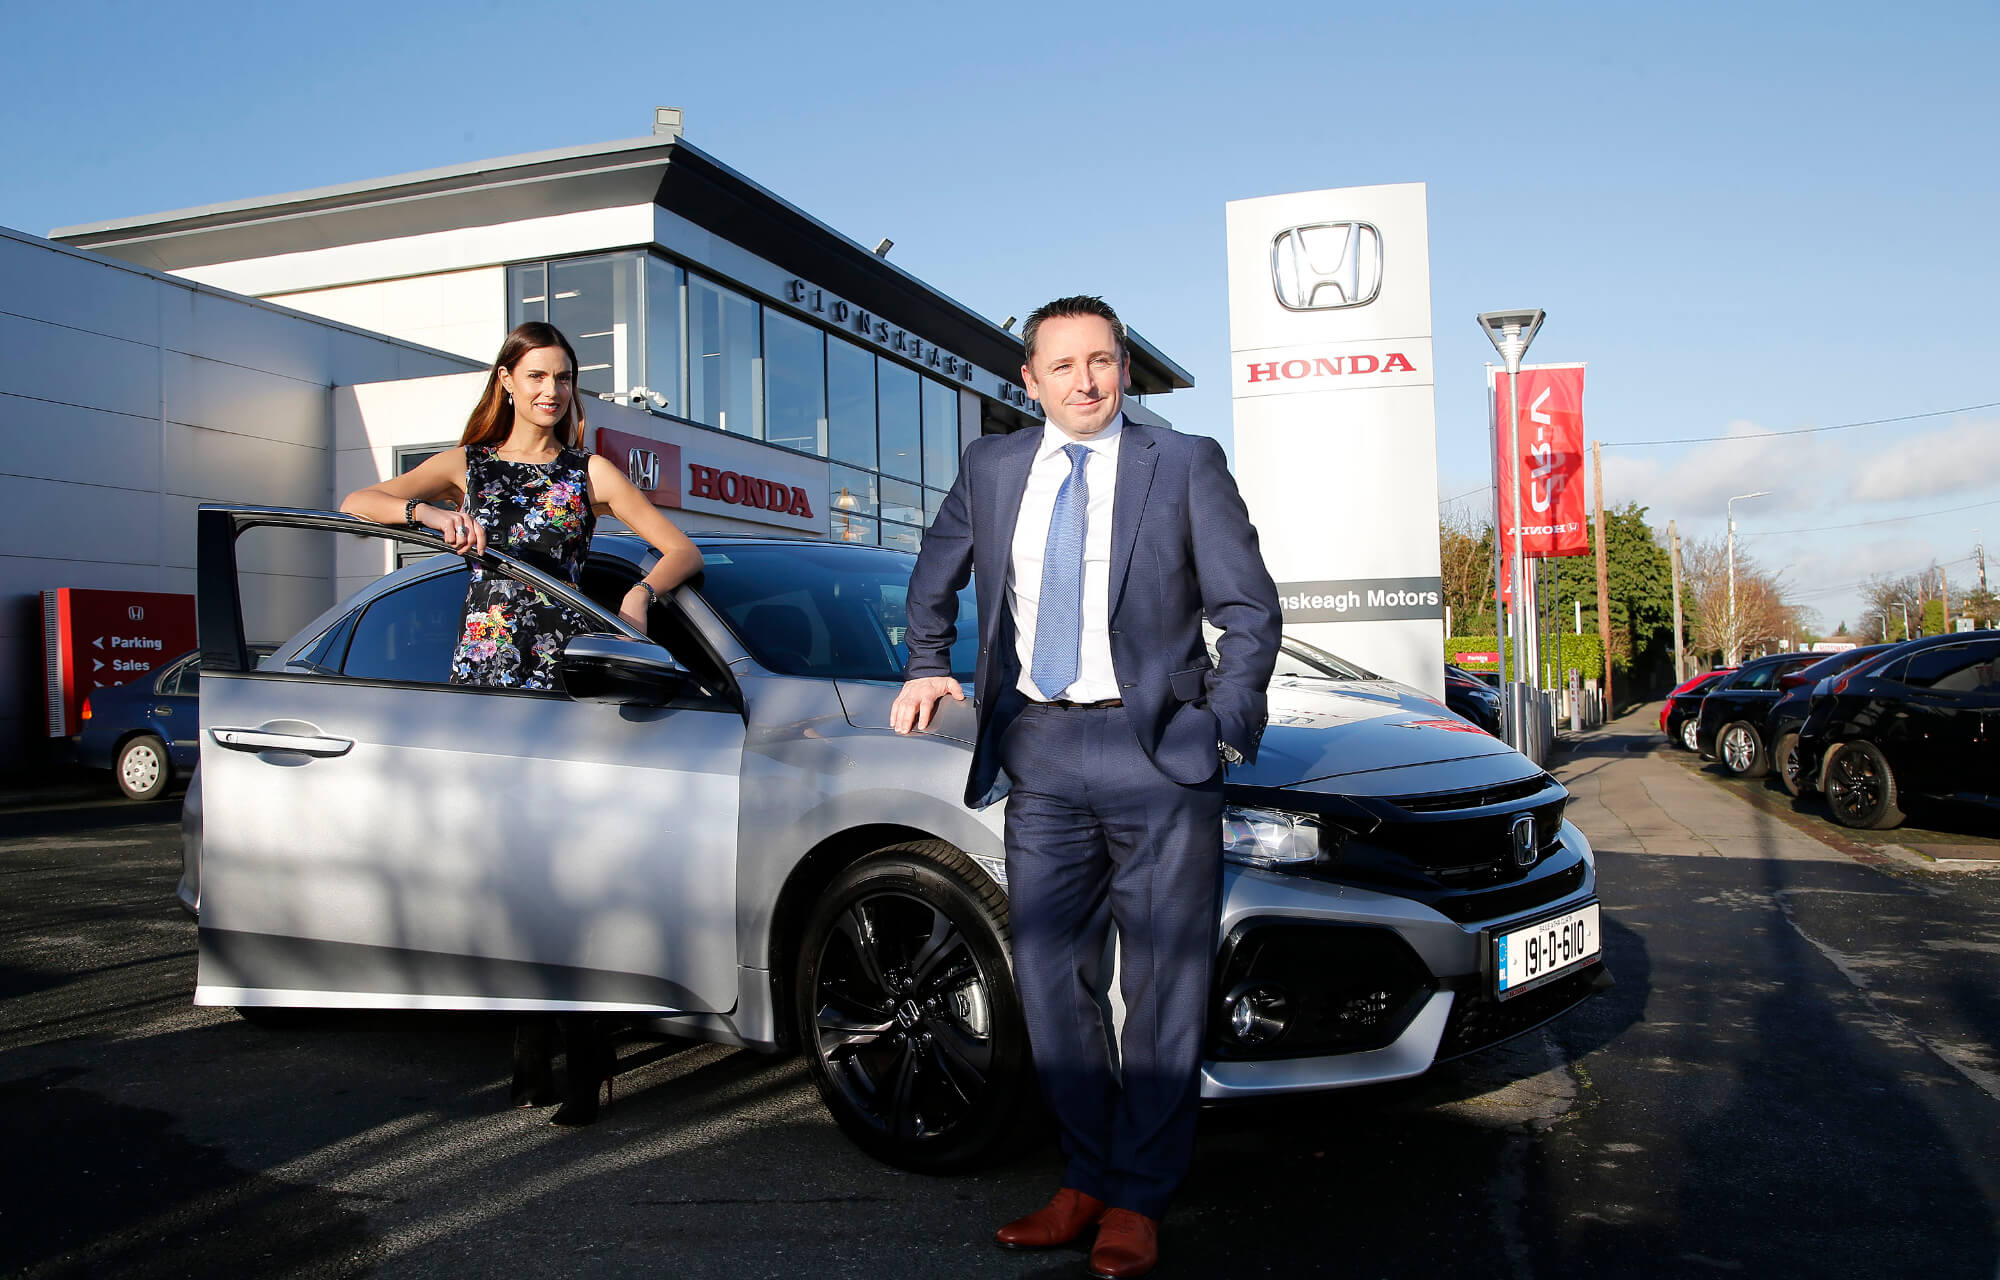 Alison Canavan Clonskeagh Motors Honda brand ambassador, international model, bestselling author and health and wellness coach and Dave Collier General Manager of Clonskeagh Motors